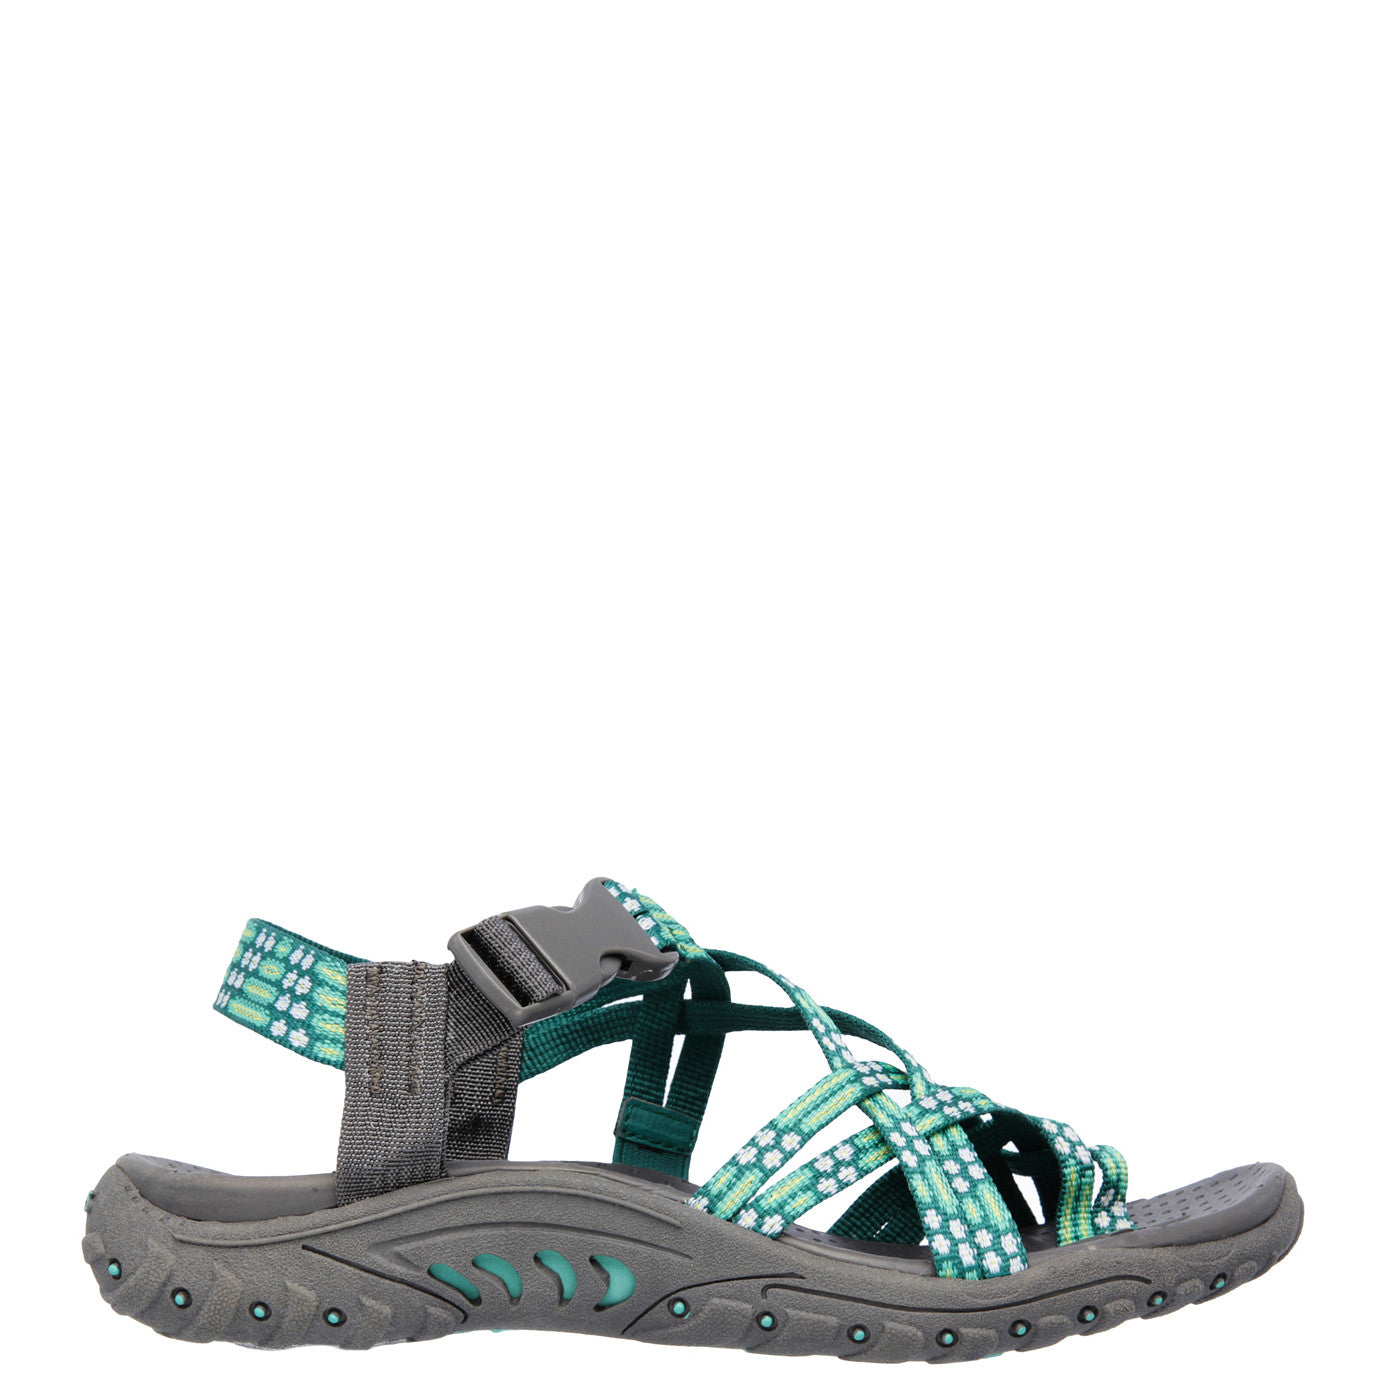 ... Skechers Women's Reggae Loopy Sandal - Mint 40875 ...